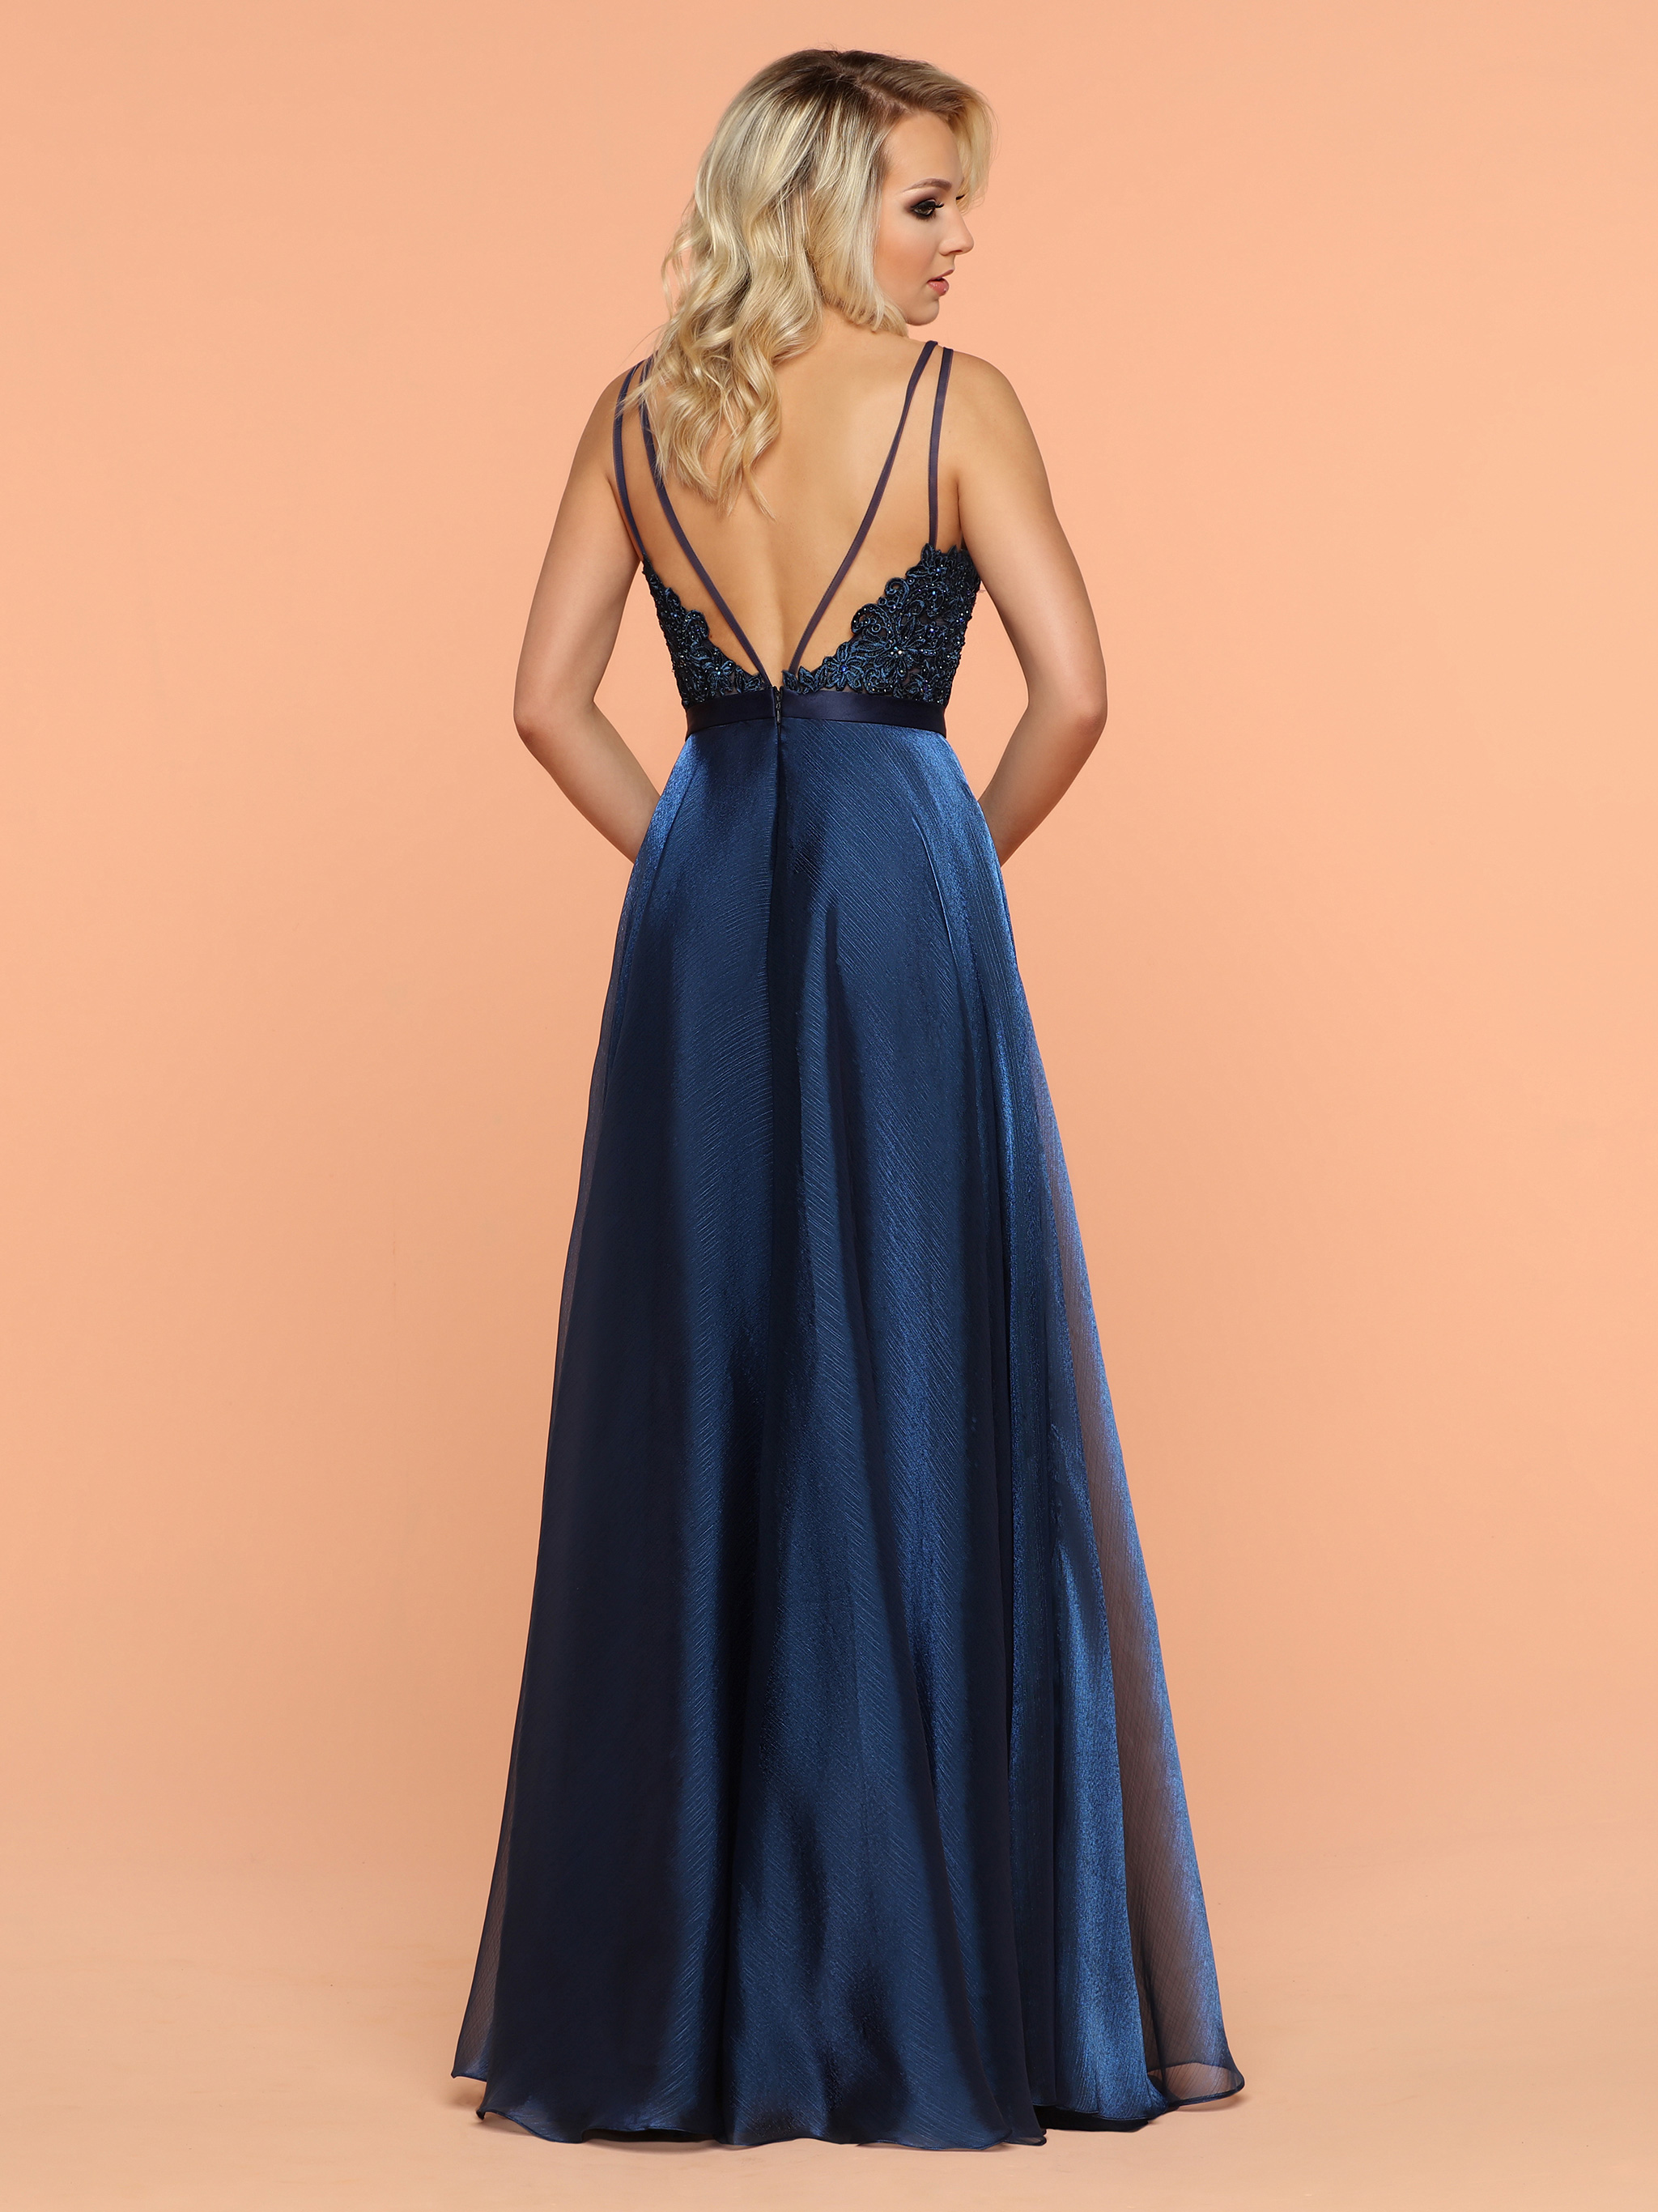 Image showing back view of style #71857